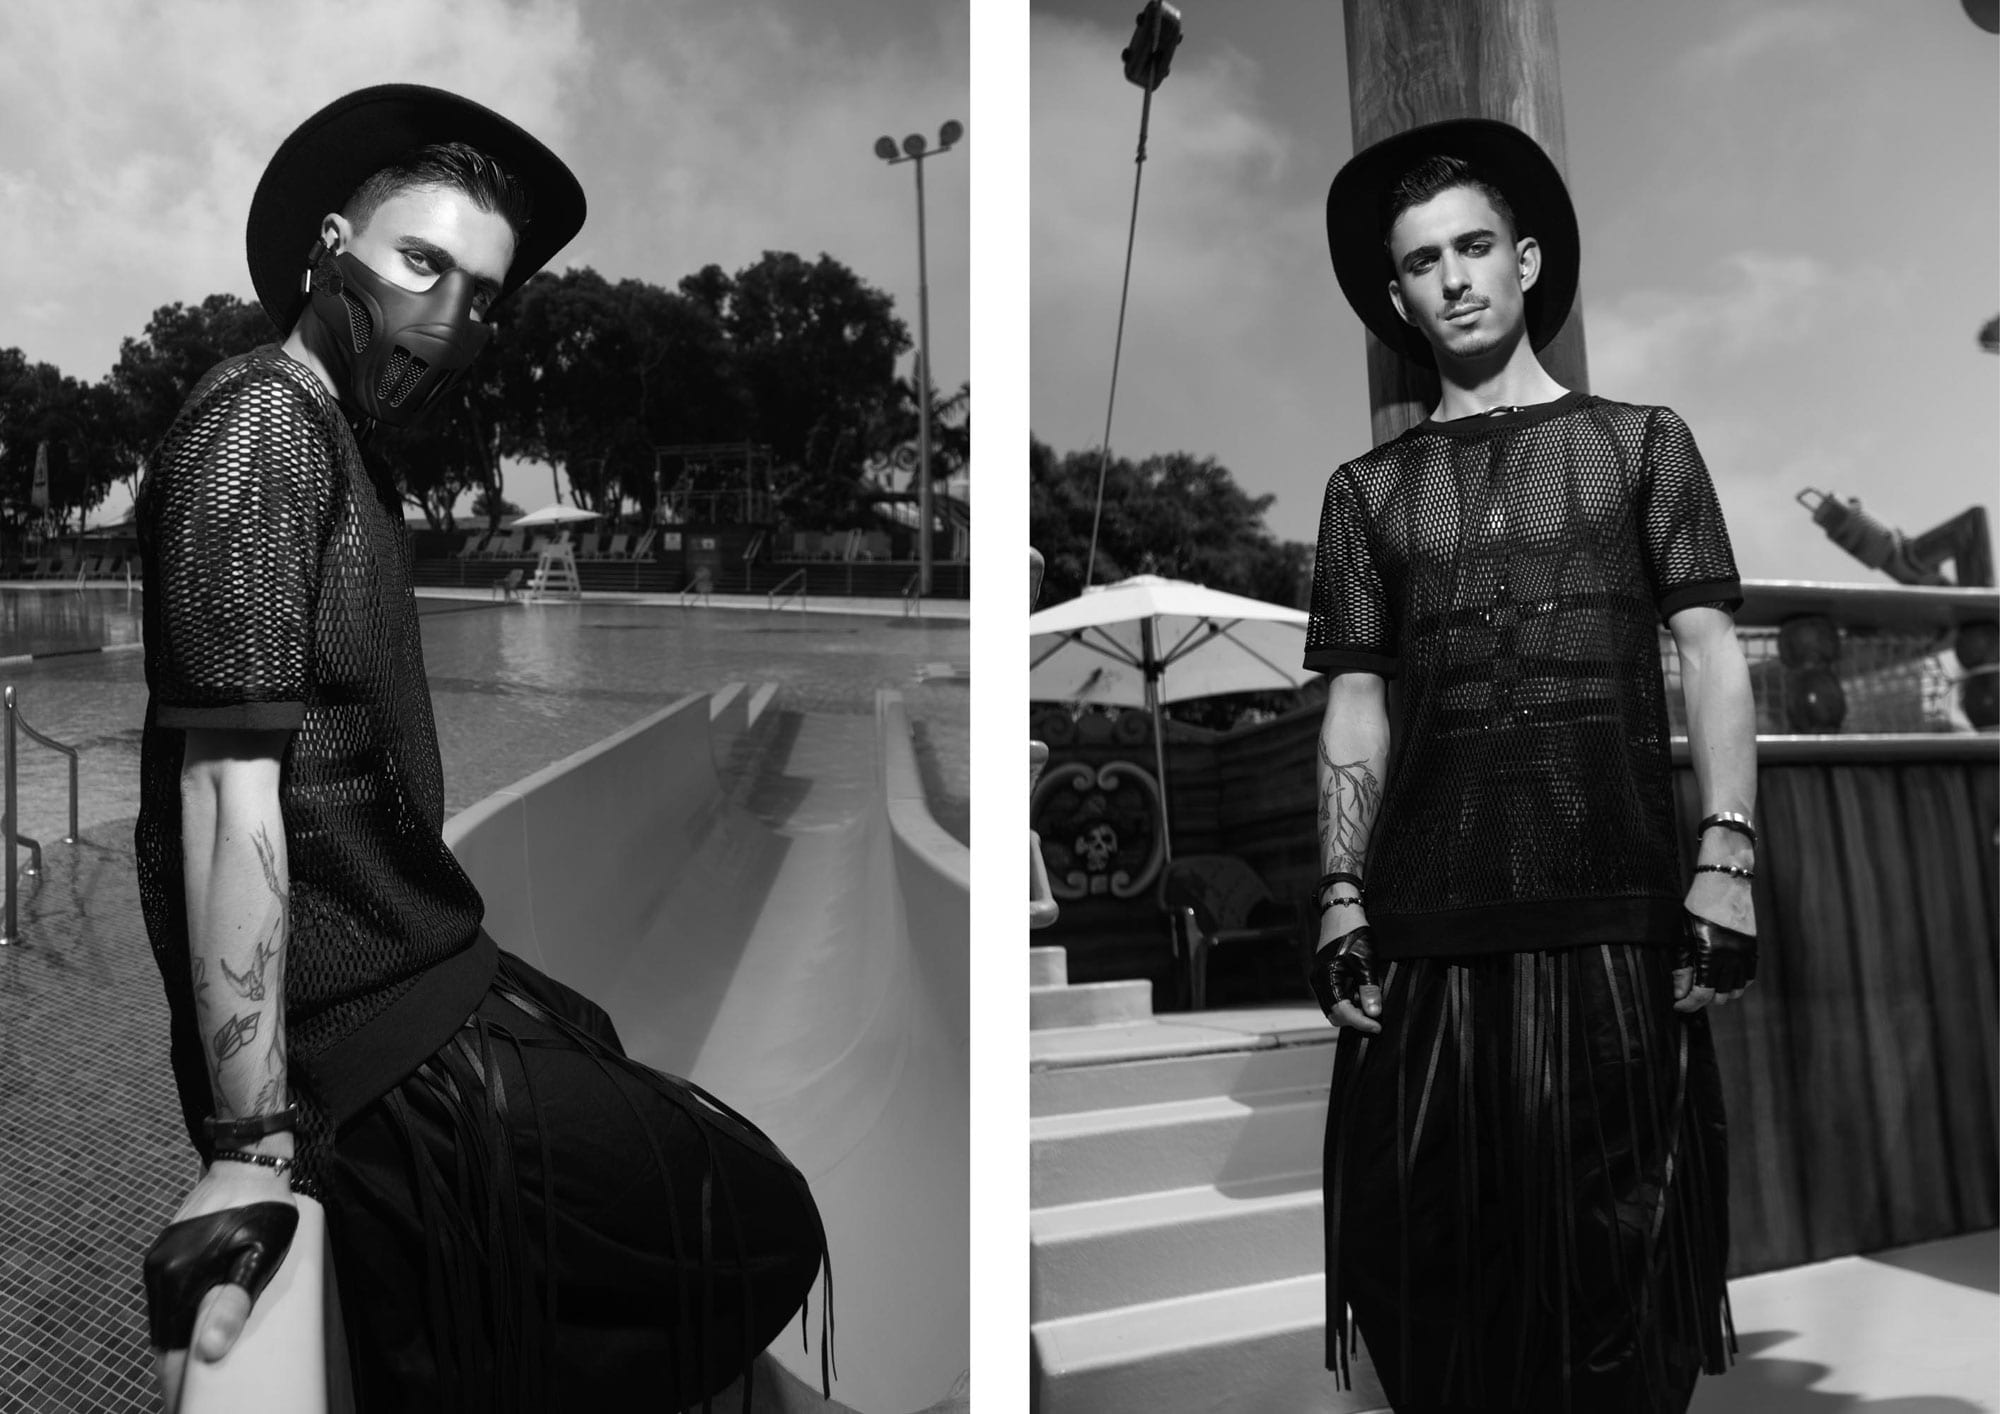 Photography: Segev Orlev Styling: Mauricio Arcillo, Fashion: Aarketa, Makeup Artist: Orna Rimok, Hair Stylist: Elad Uziel, Hair & Makeup: lior krispel, Models: Sami Dadon, Yinon Perets, Ldor Bar Or, Yaniv Putterman, Producer: Orna Rviztky for Fashion Israel, Pr: Rotem Lalush15